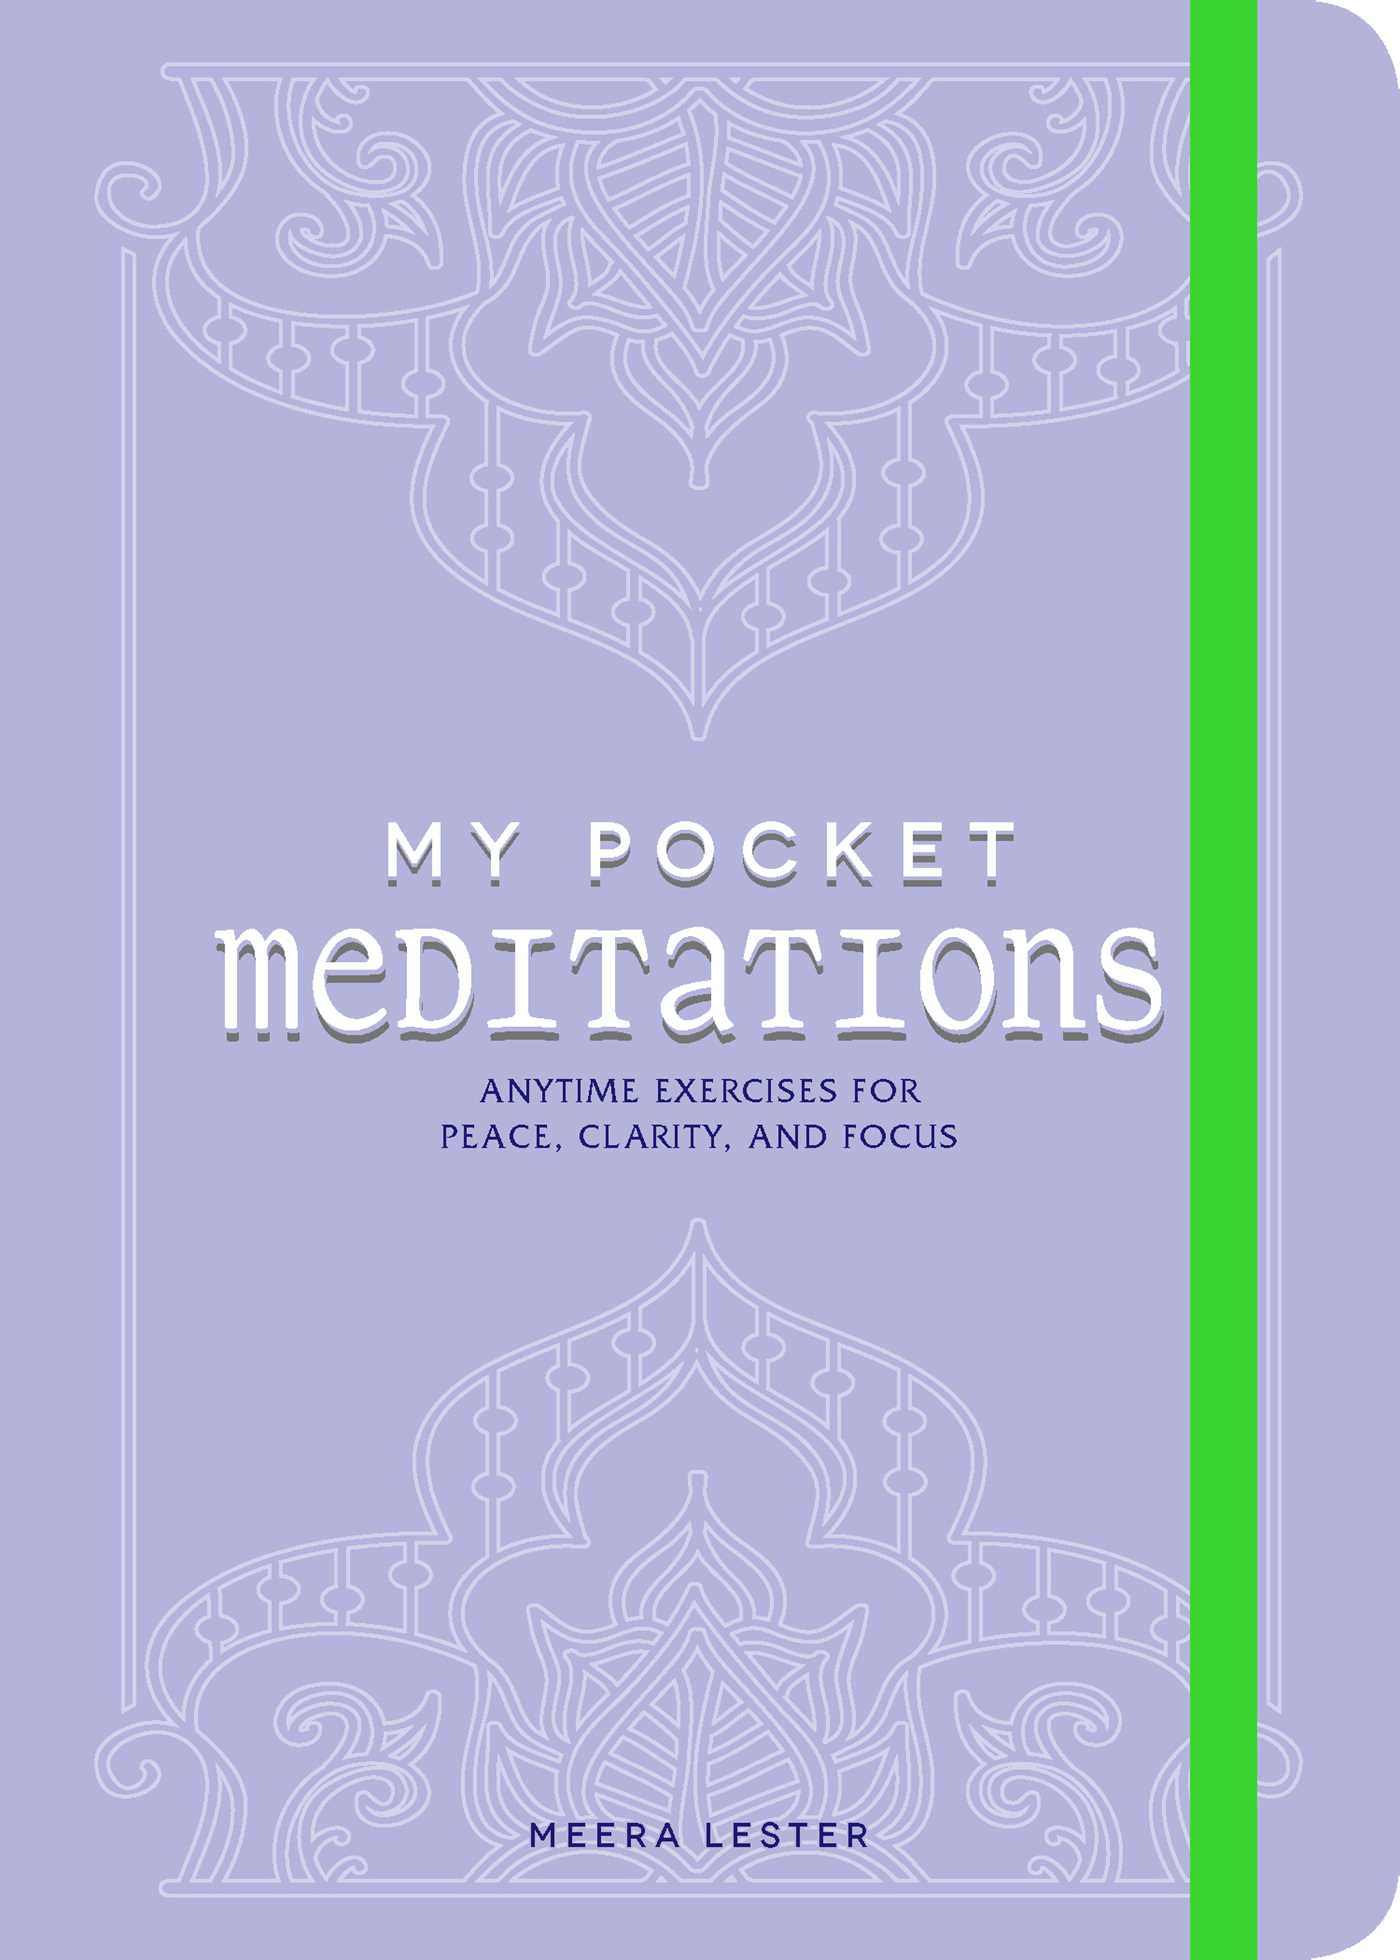 My pocket meditations 9781507203415 hr